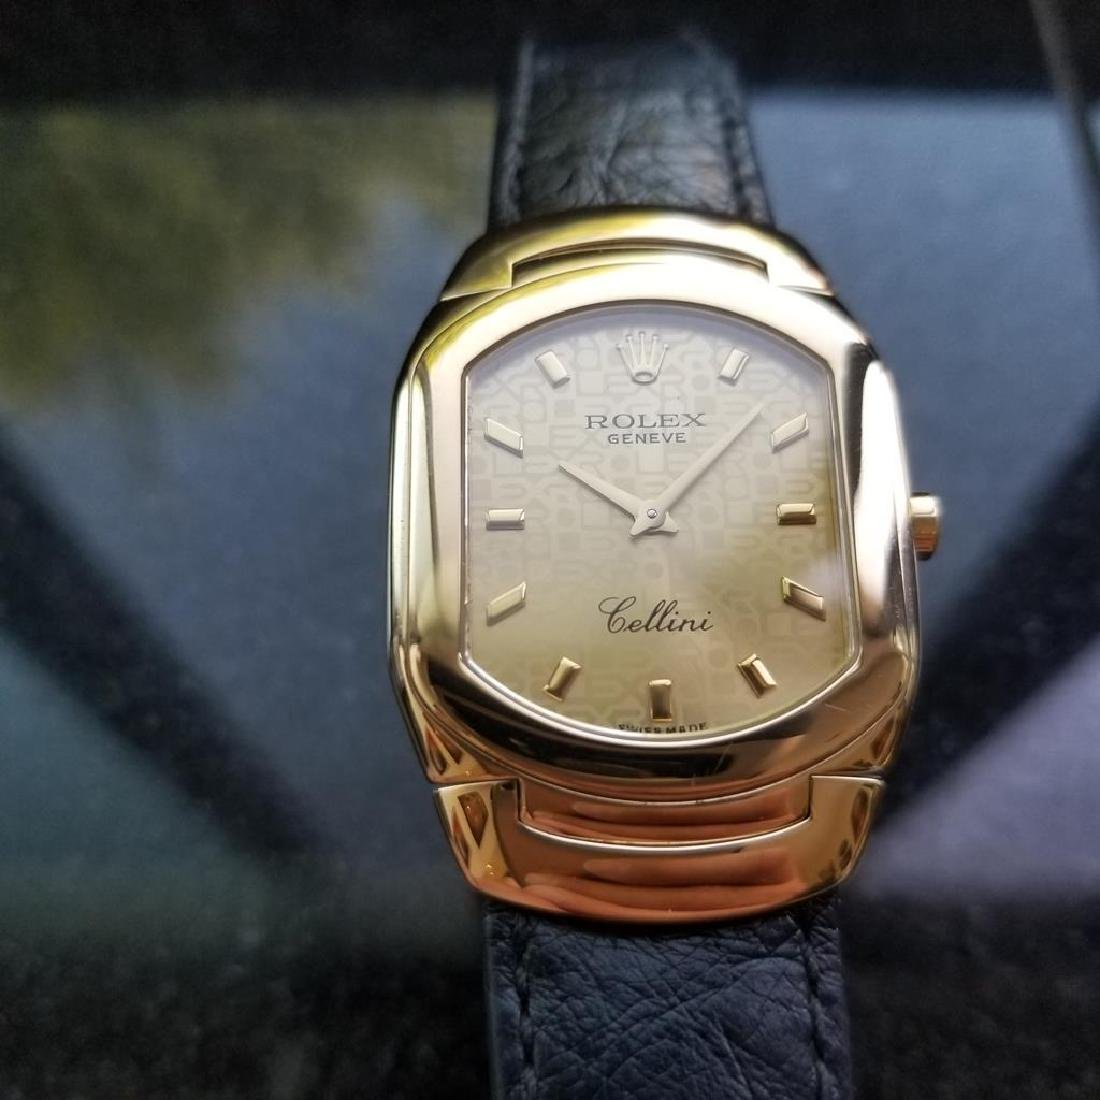 ROLEX Cellini 6633 18K Solid Gold Watch, c.2000 all - 2